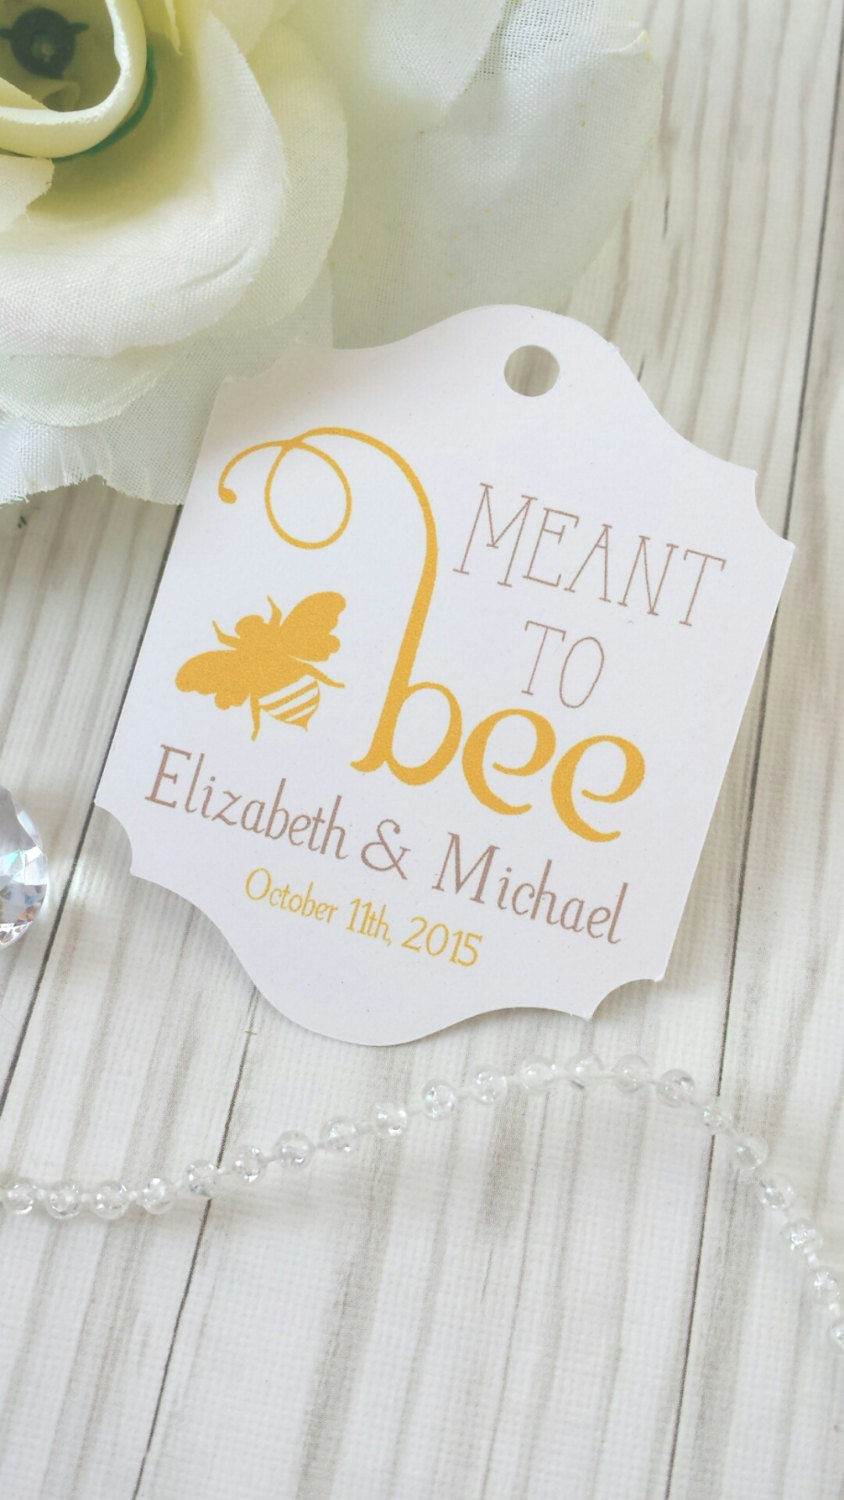 Honey Wedding Tag Meant to Bee Wedding Favor Tags